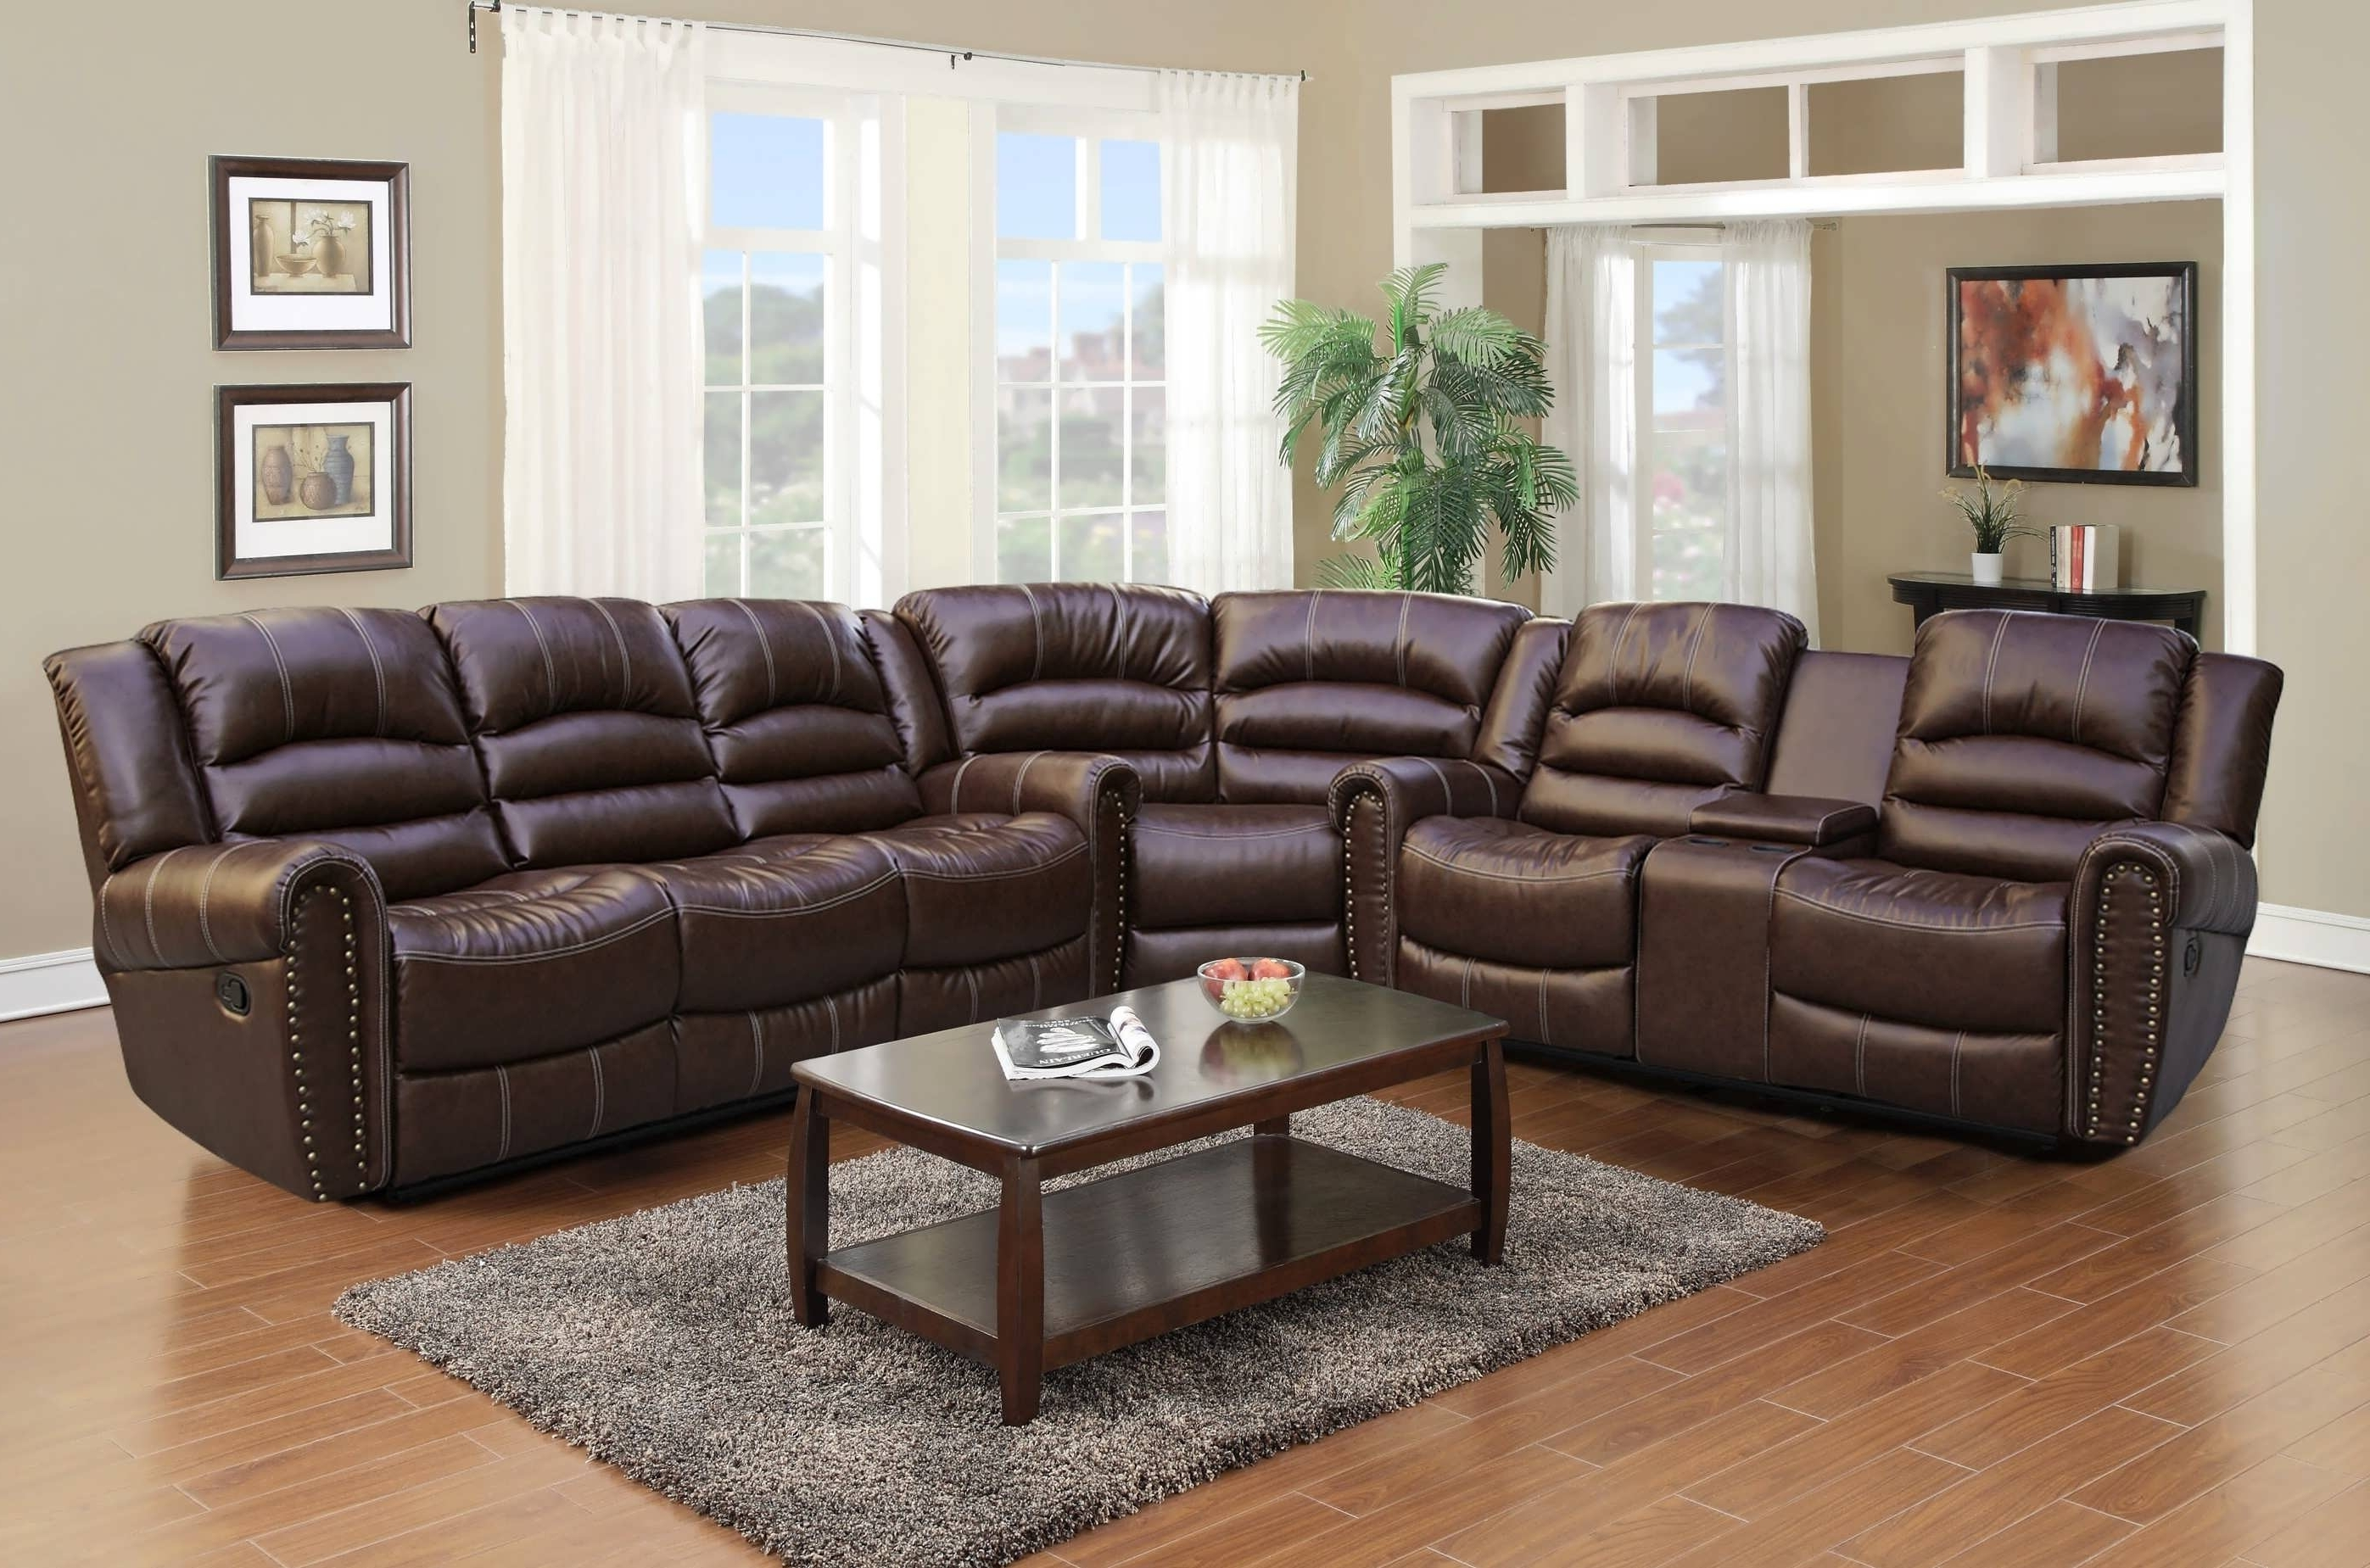 Newest Sofa : Small Chaise Sofa Leather Sectionals For Sale Grey Within Small Chaise Sectionals (View 4 of 15)